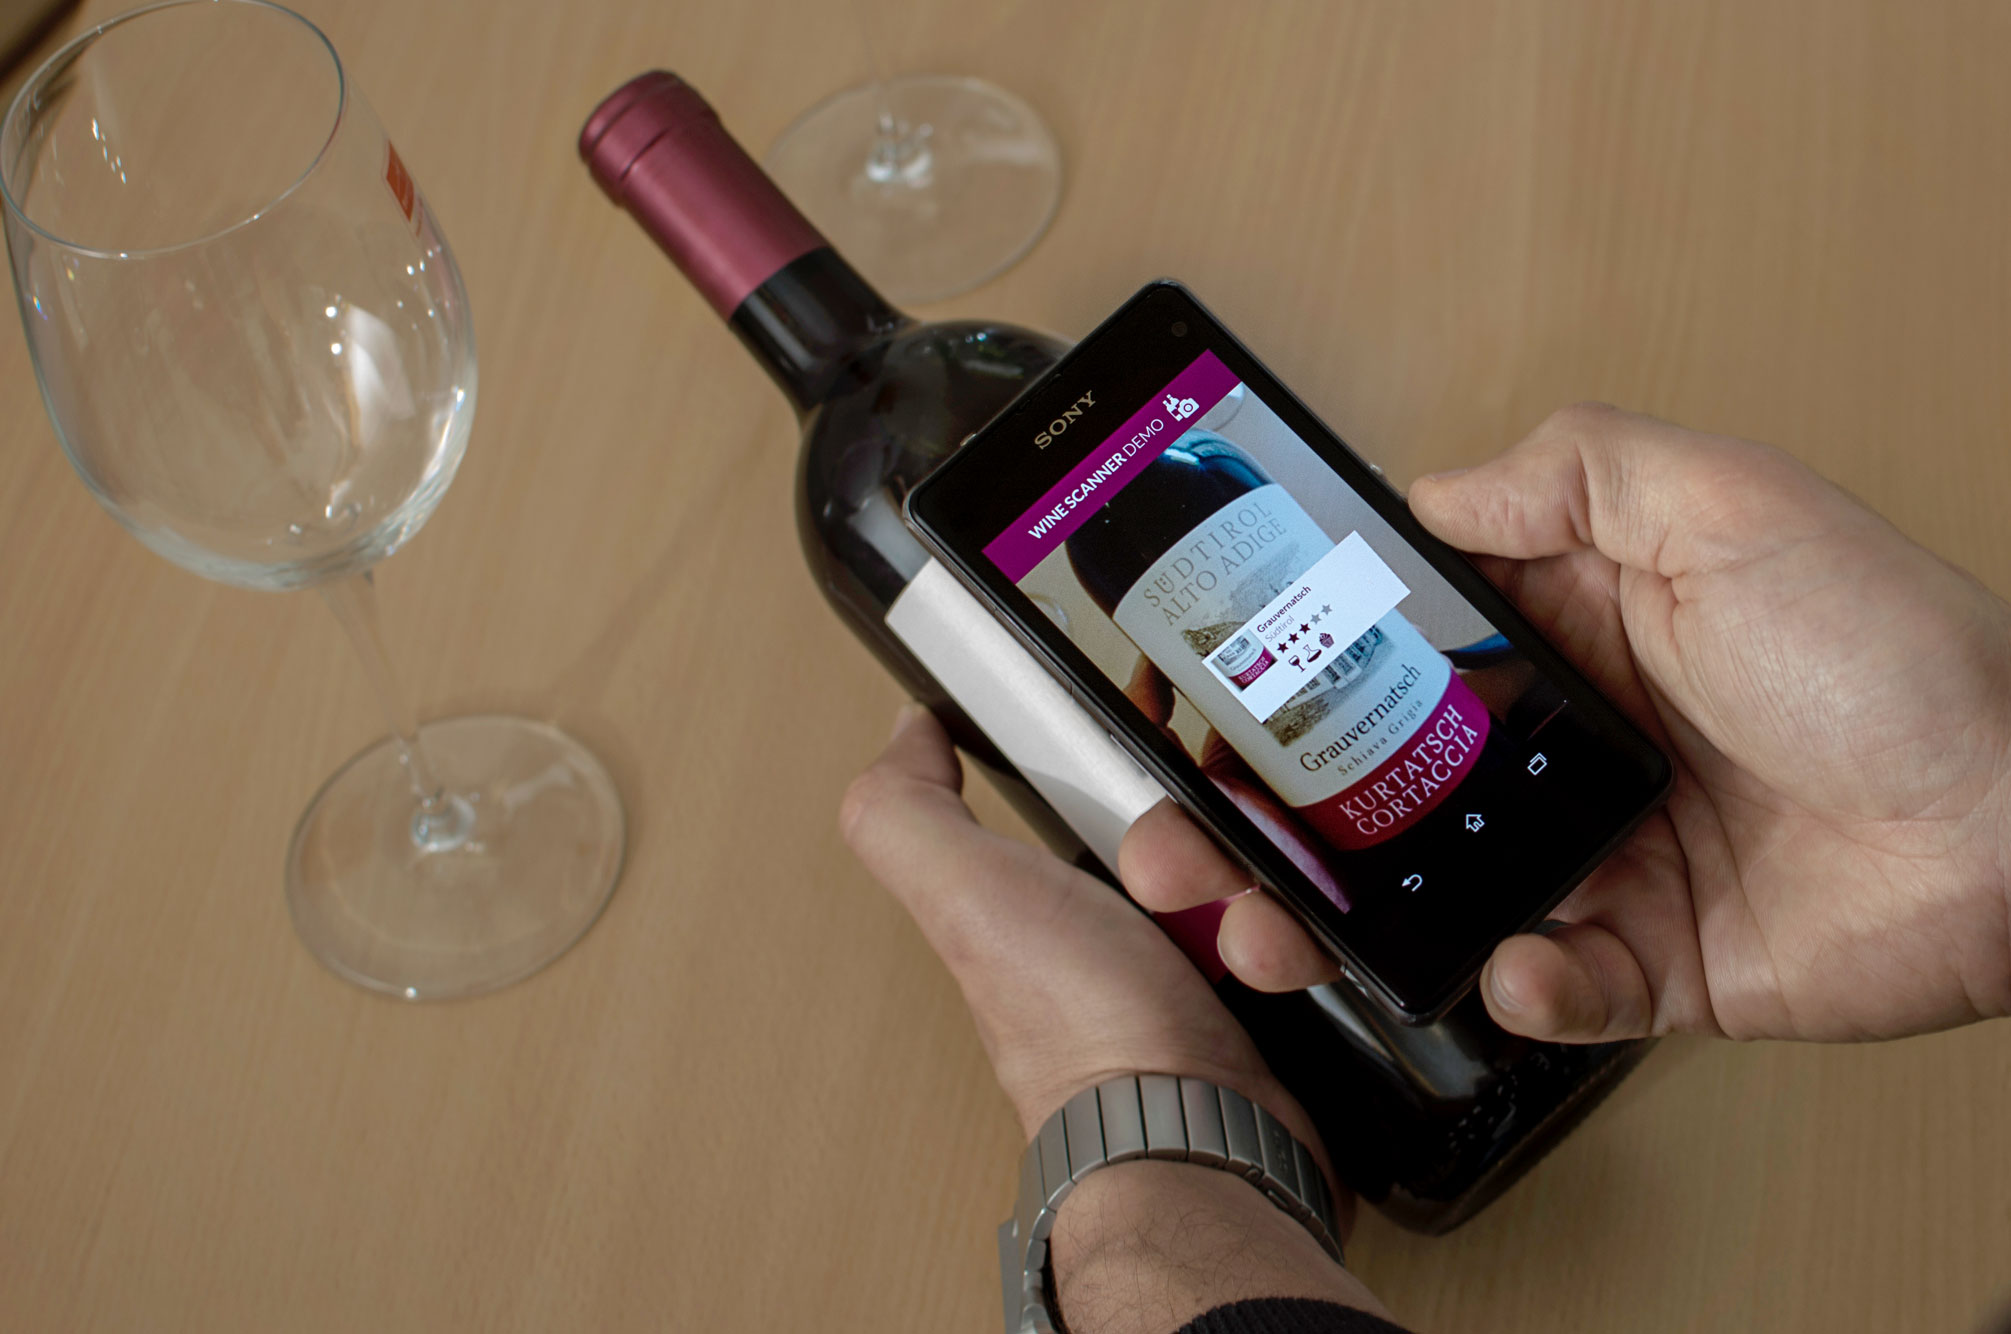 Wine bottle label augmented using image wikitude cloud recognition